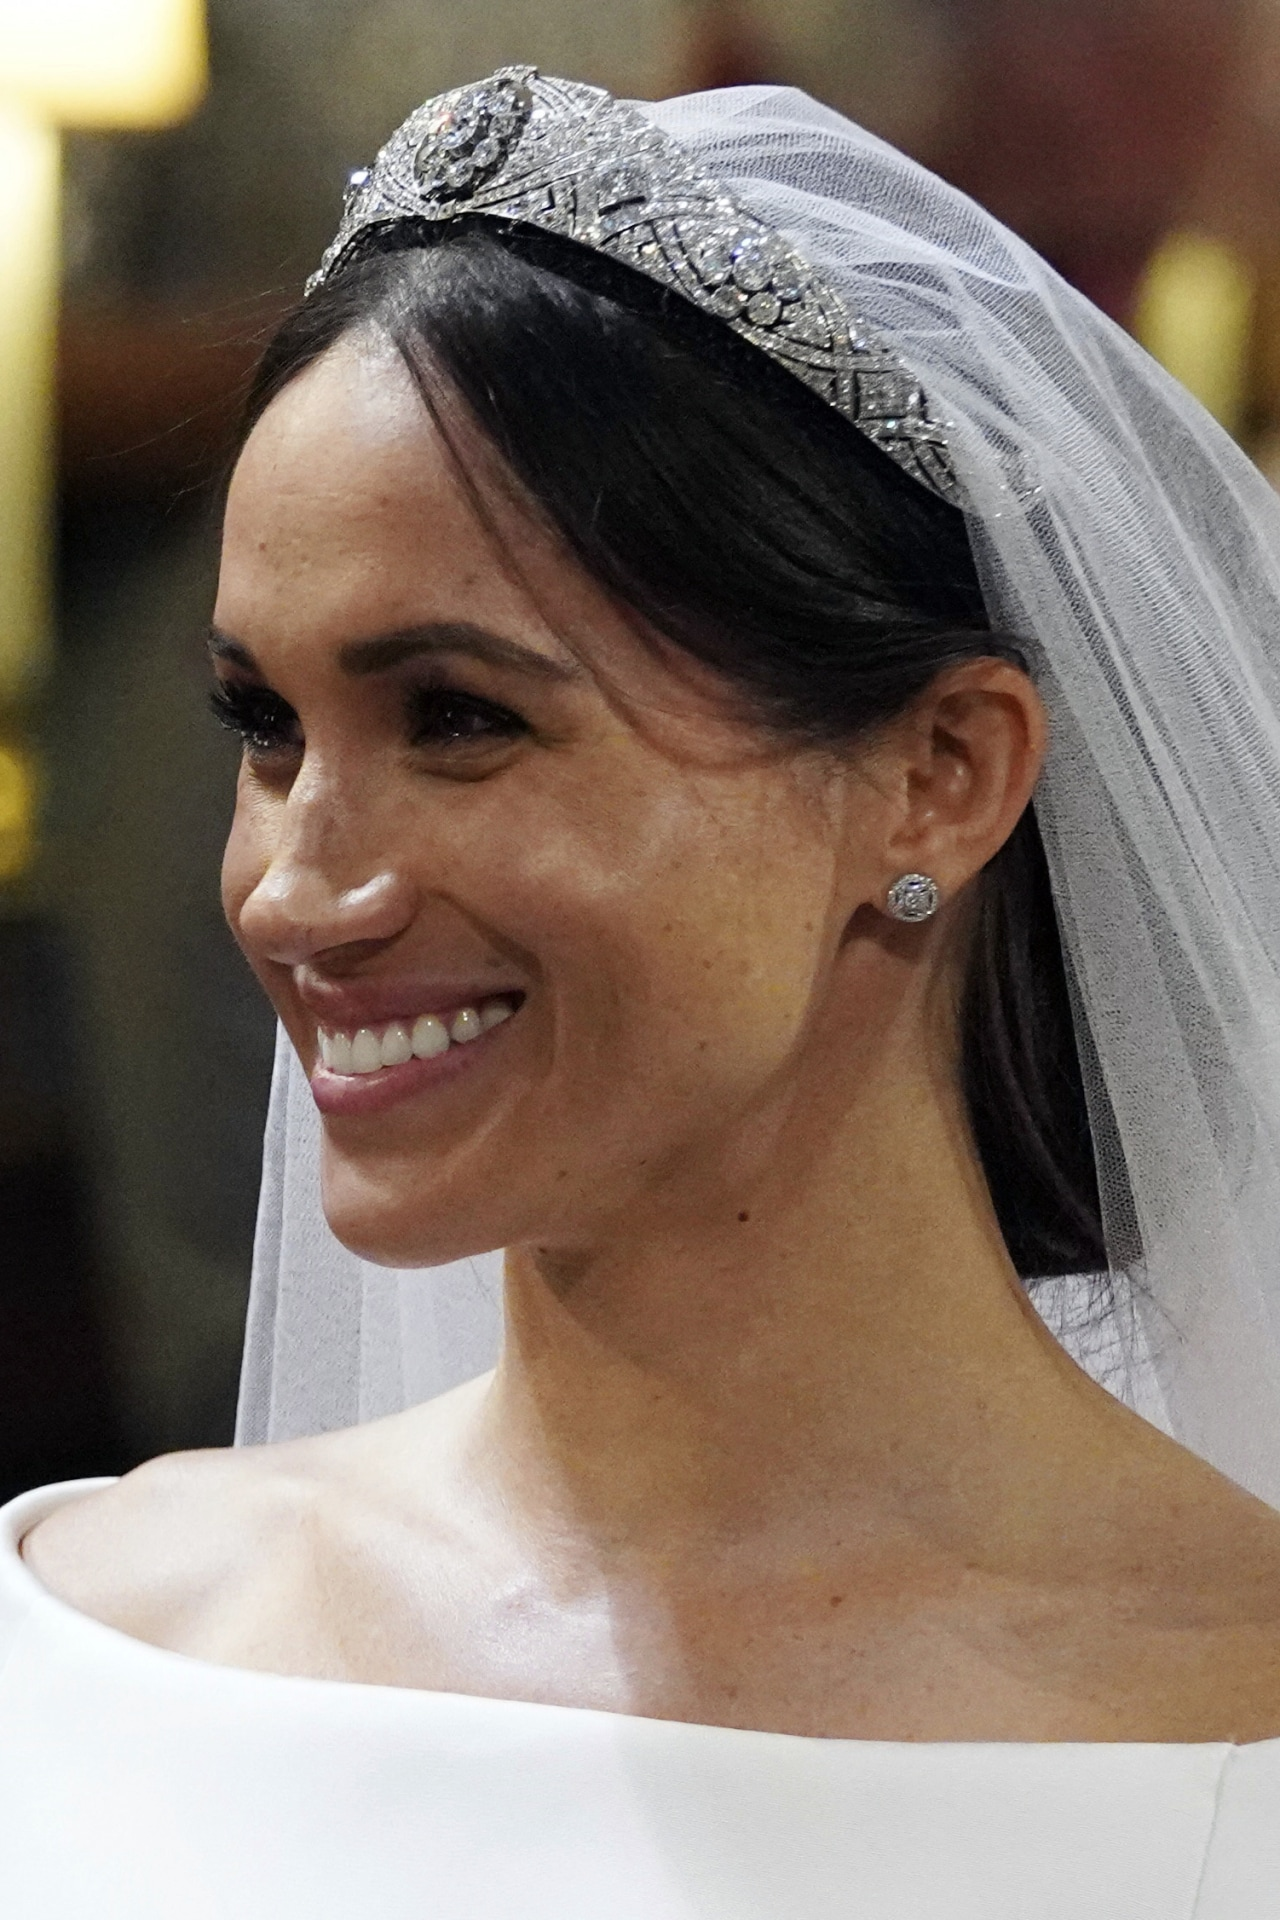 Meghan Markle chooses an elegant up-do for the royal wedding